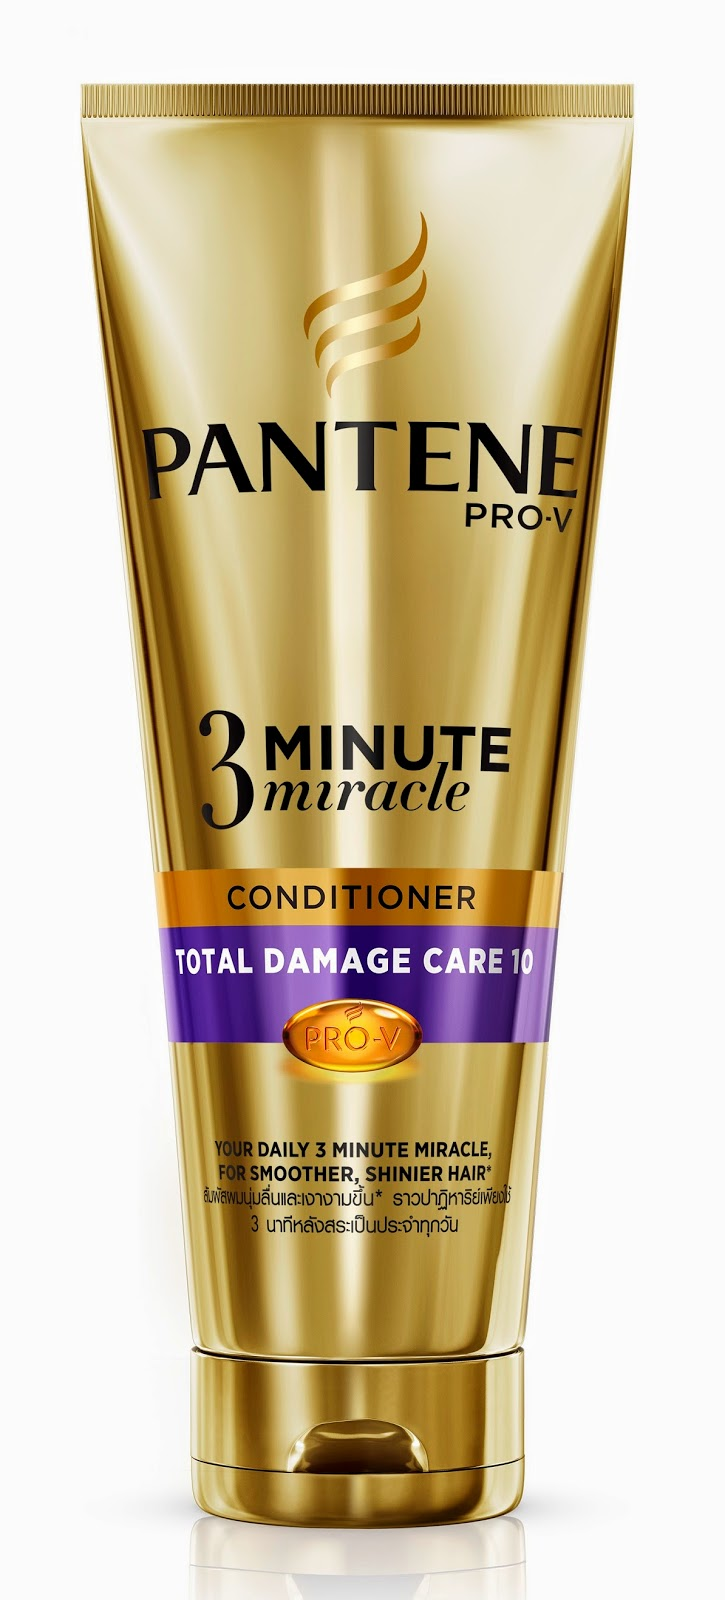 The Philippine Beat Pantene 3 Minute Miracle Conditioner